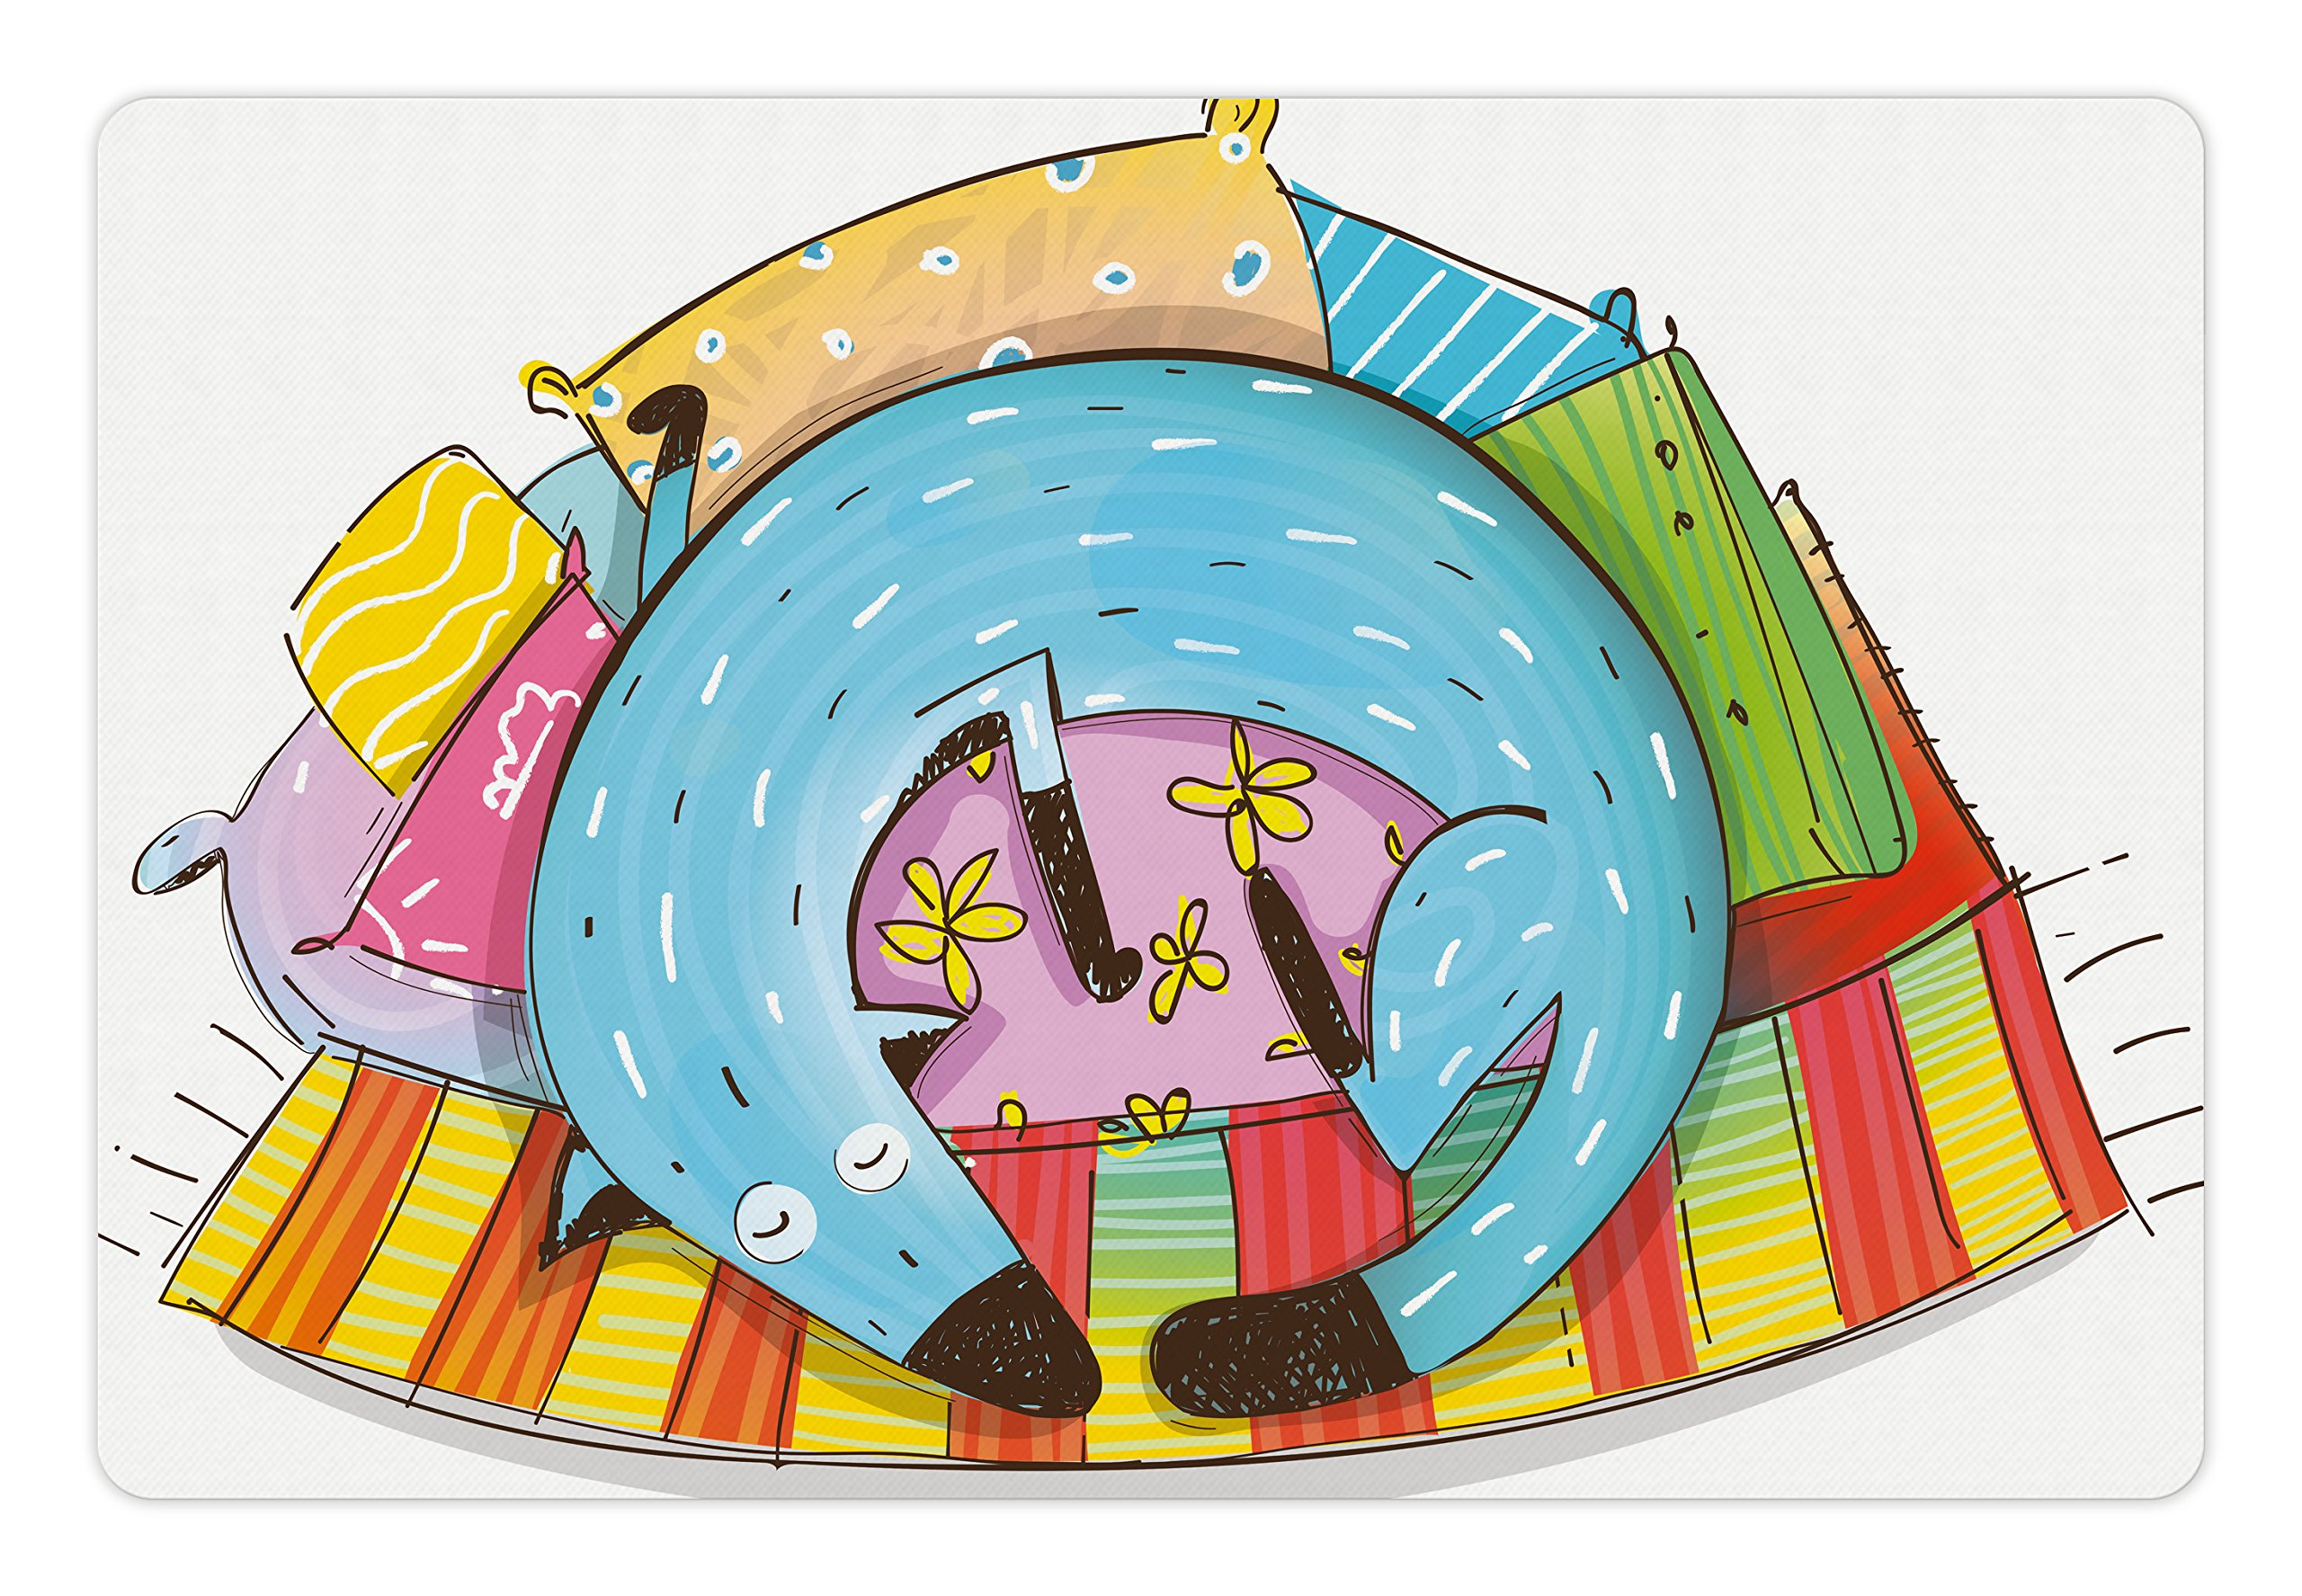 Lunarable Quirky Pet Mat for Food and Water, Cute Dog Sleeping on Colorful Pillows Funny Domestic Pet Animal Caricature Design, Rectangle Non-Slip Rubber Mat for Dogs and Cats, Multicolor by Lunarable (Image #1)